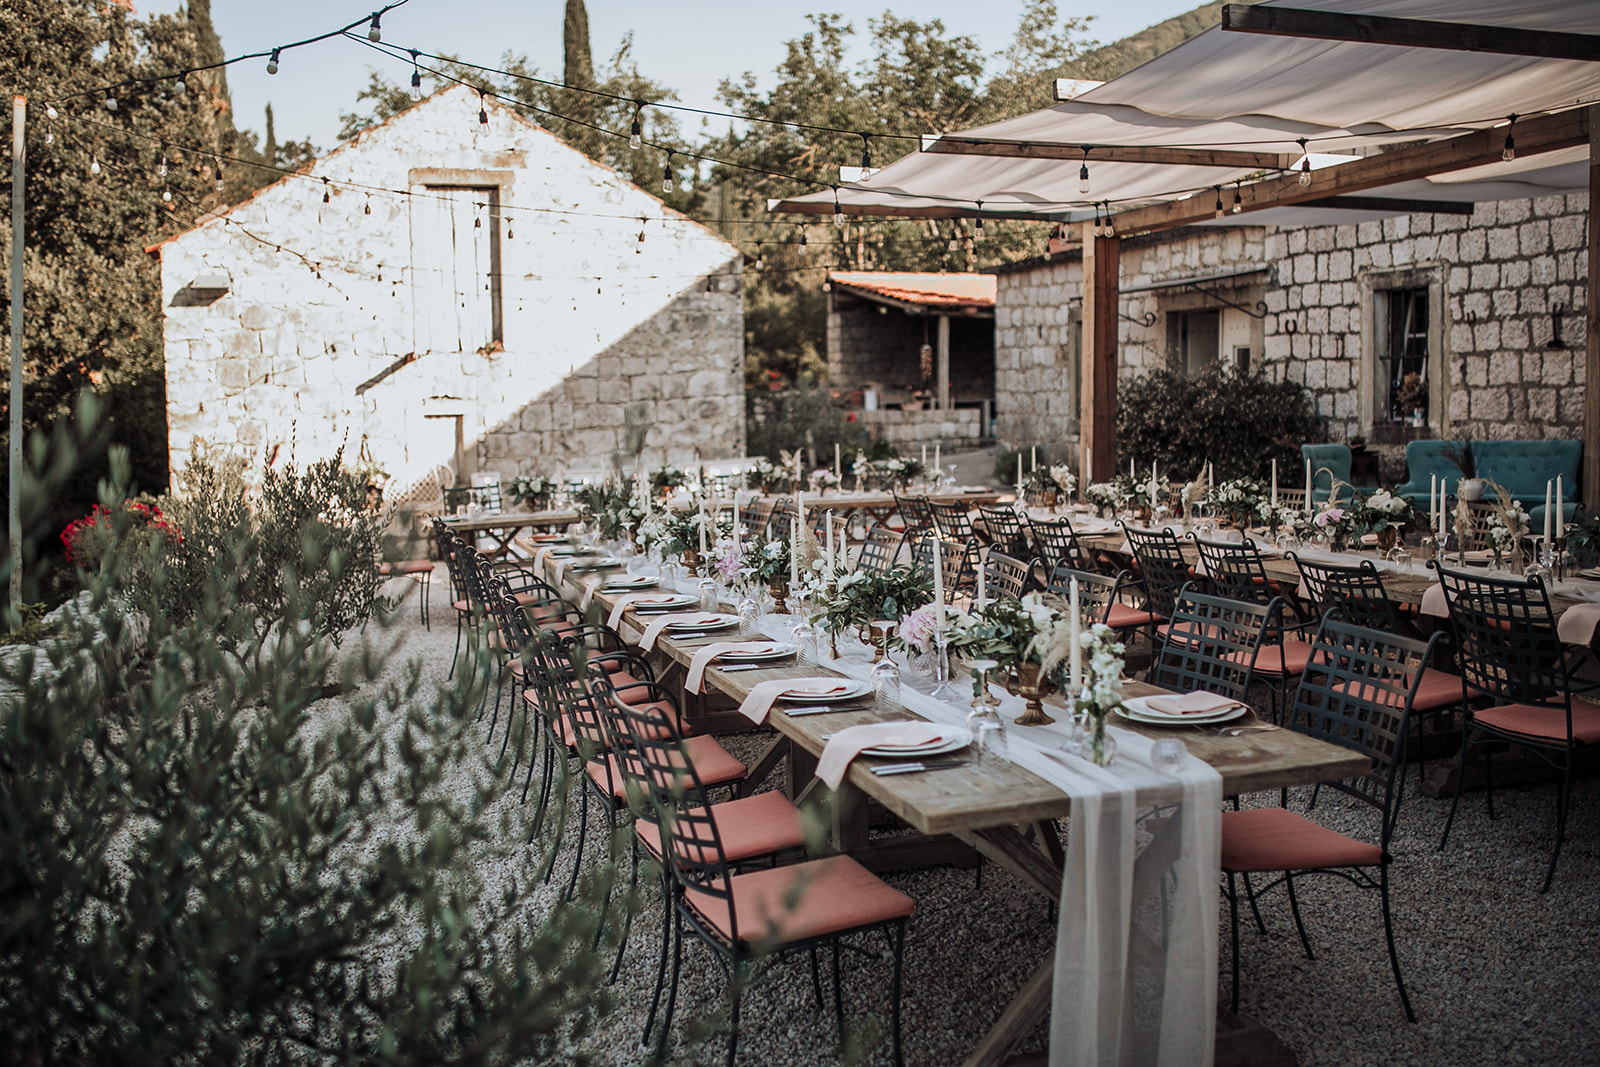 A lovely photo from a countryside wedding in Konavle, next to Dubrovnik. The whole scene looks like Tuscany. There are fairy lights above them and you can see a stone house in the background.